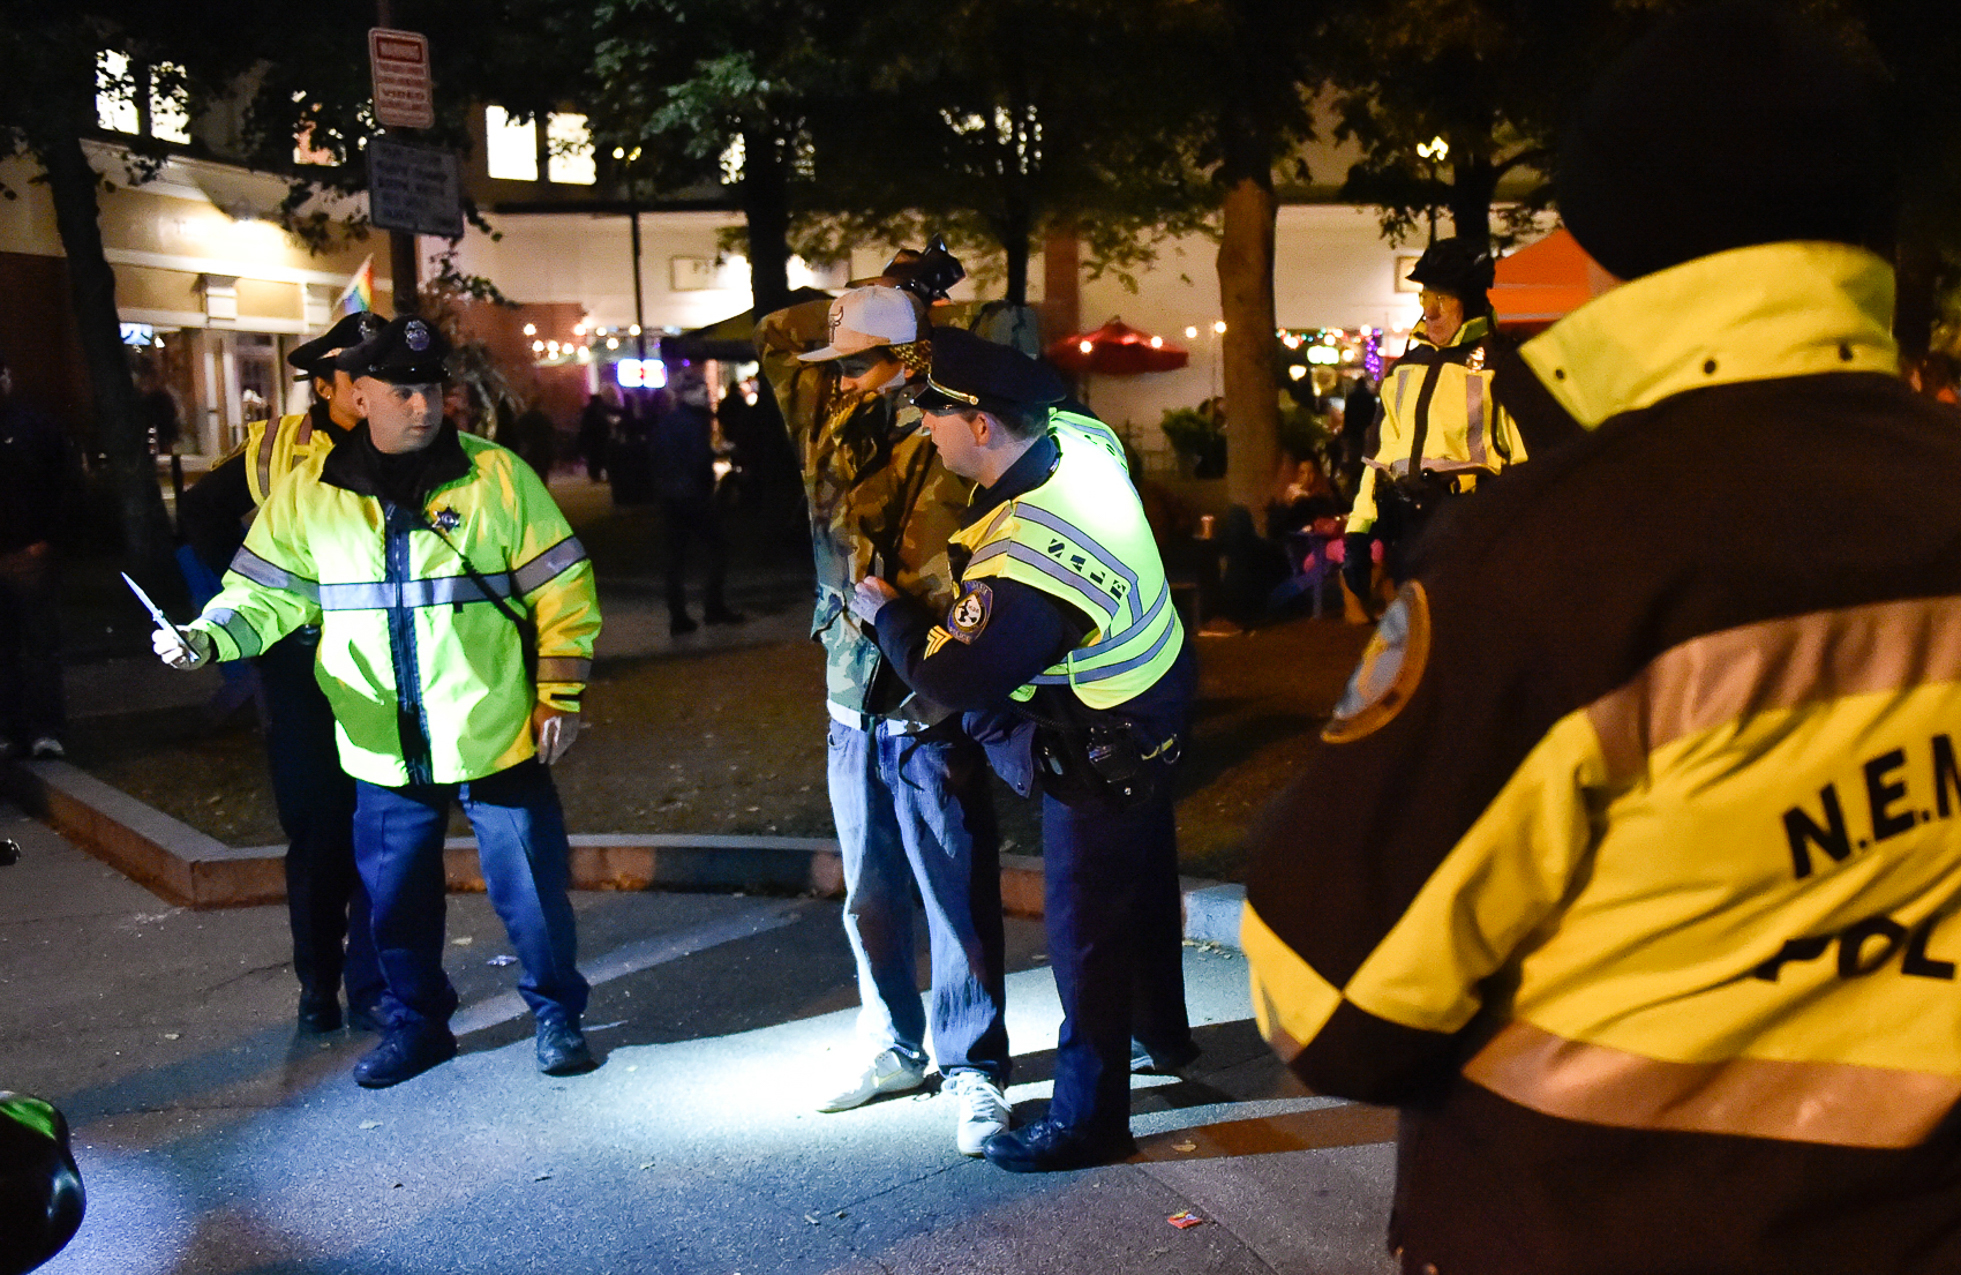 1st Place, Spot News Photo  A Salem police officer, left, holds a switchblade knife, which was allegedly found on this man, near Washington and Essex Street on Halloween night in Salem on Monday, Oct. 31, 2016.